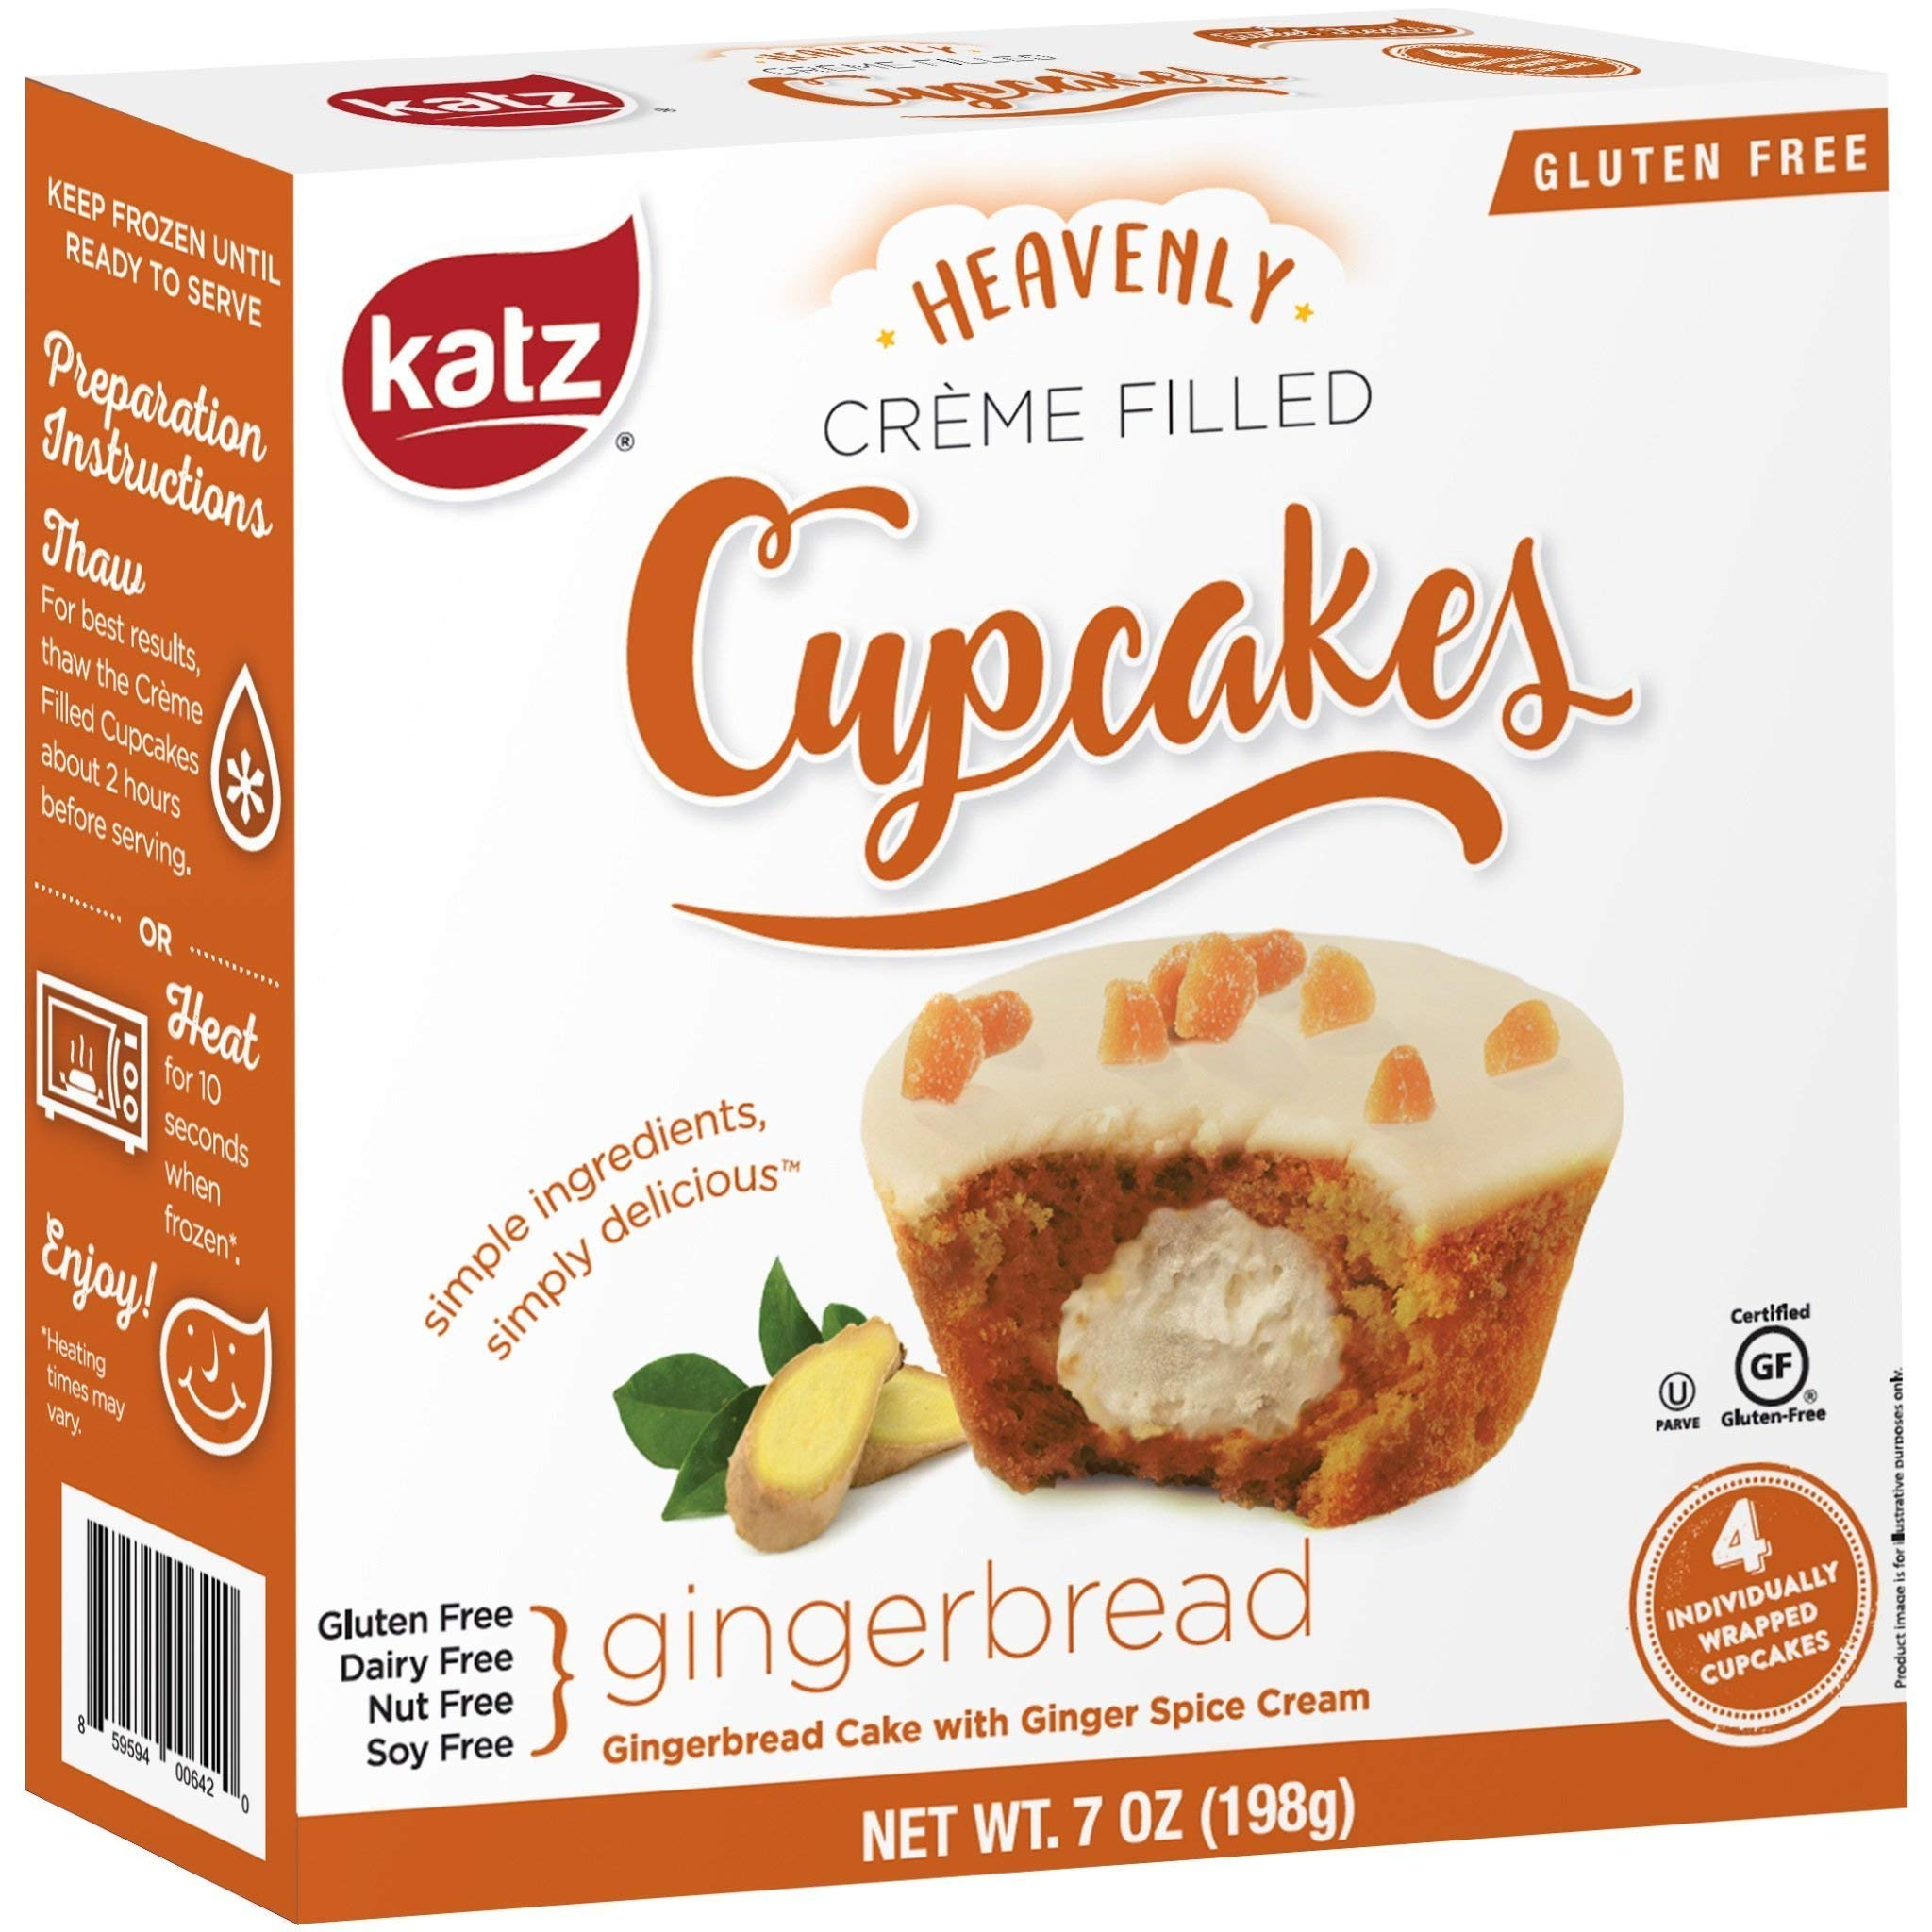 Katz Gluten Free Gingerbread Crème Filled Cupcakes | Dairy, Nut, Soy and Gluten Free | Kosher (3 Packs of 4 Crème Cupcakes, 7 Ounce Each) by Katz Gluten Free